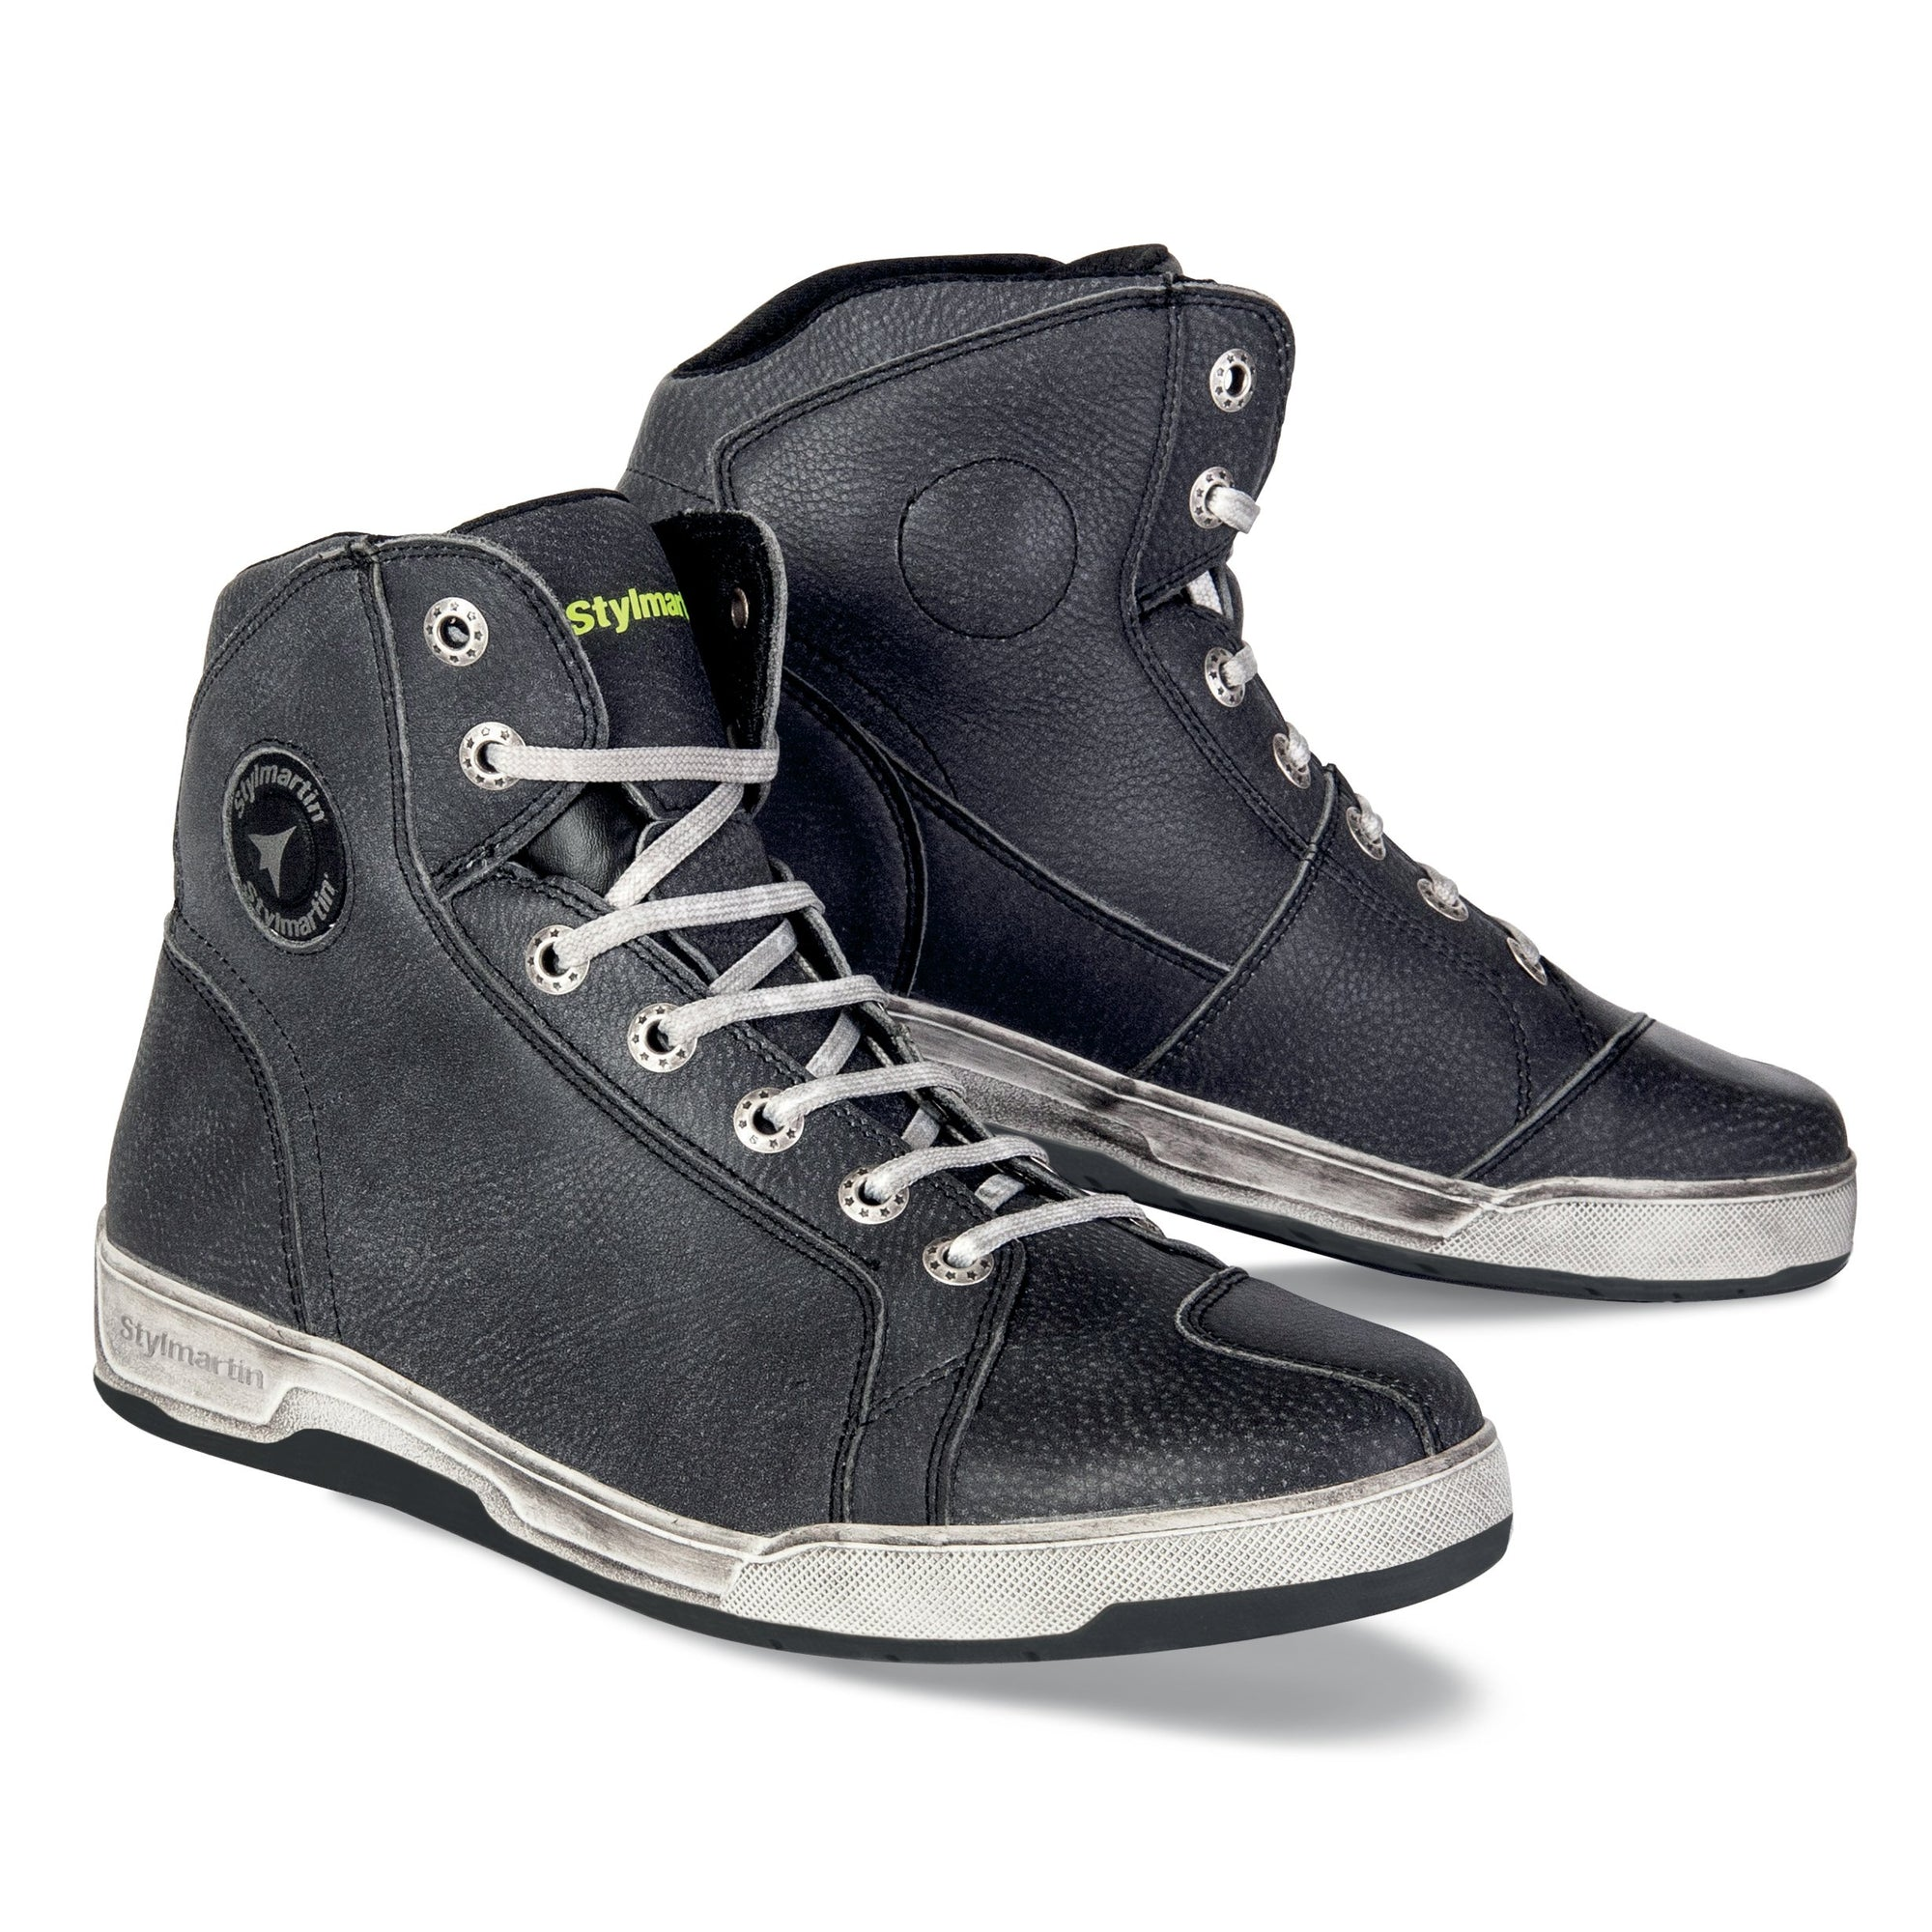 Stylmartin Chester Sneaker Motorcycle Boot